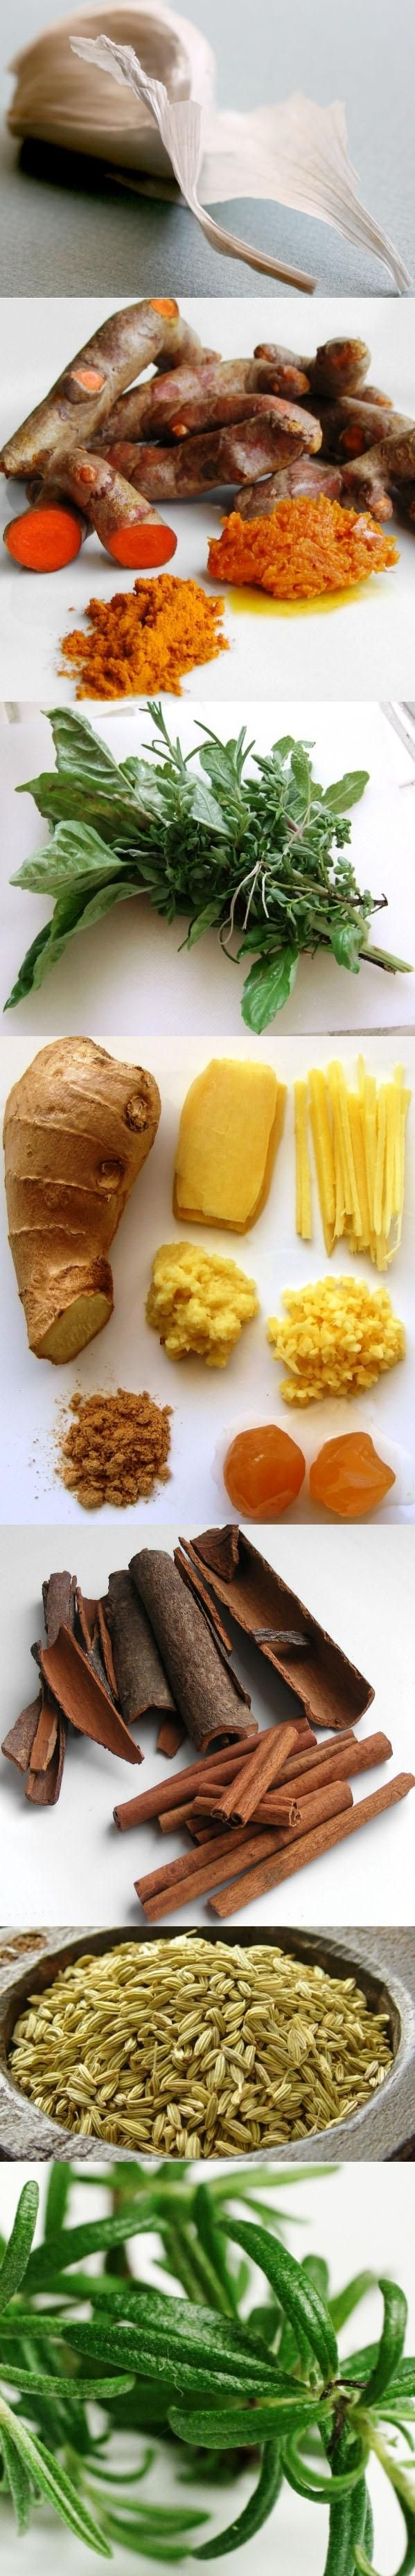 700 best spices and herbs images on pinterest food styling